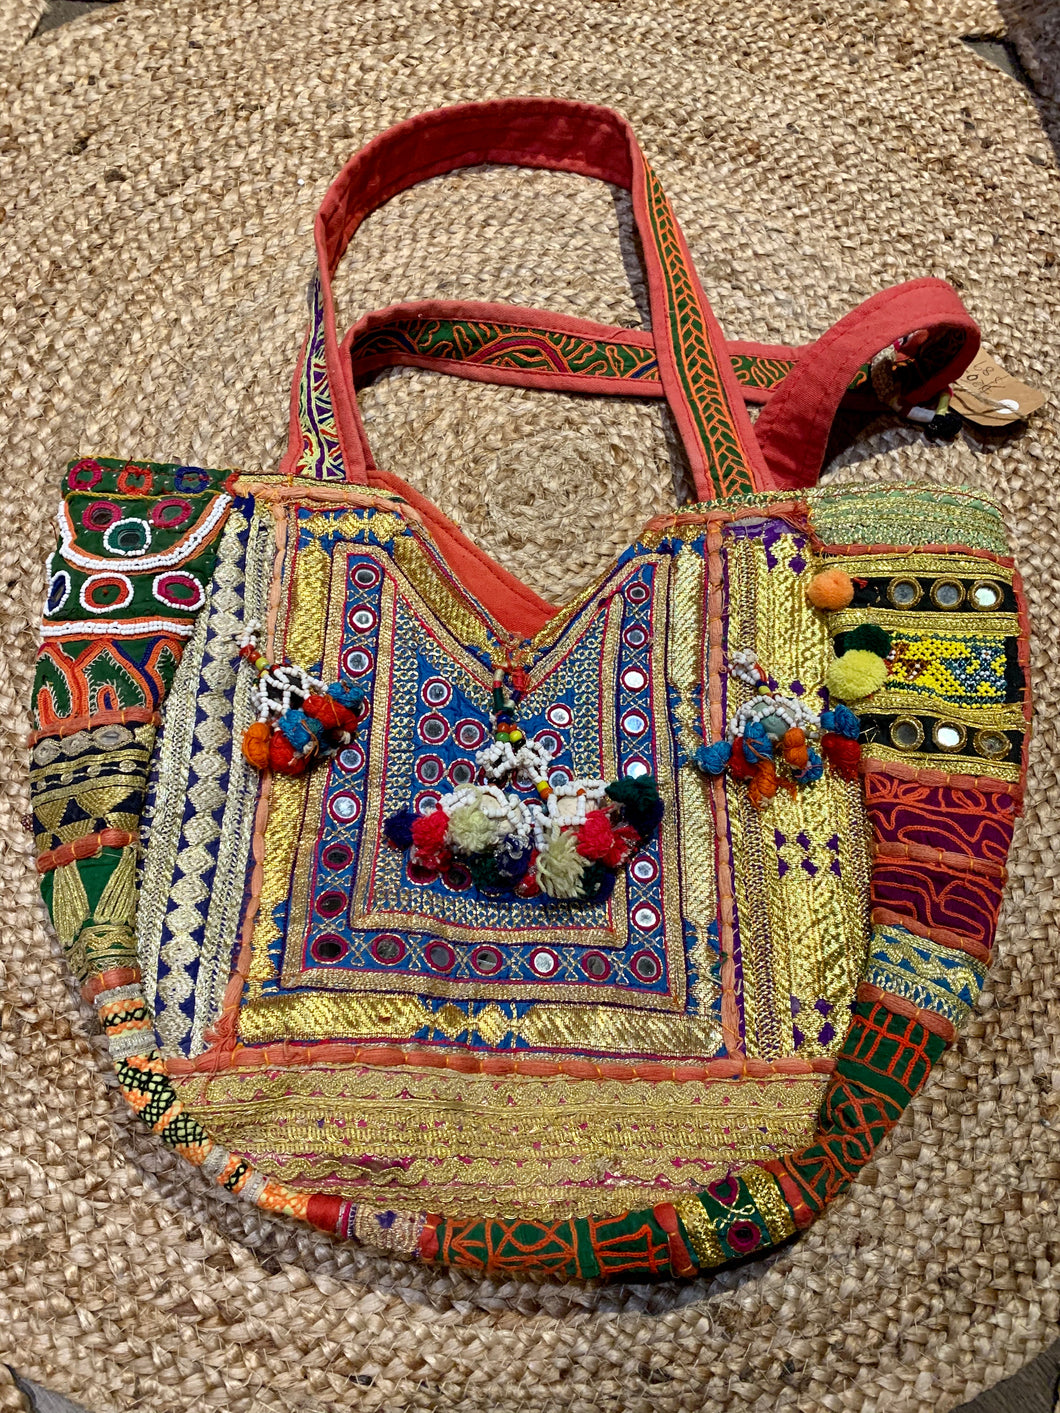 Banjara Vintage Oversize Embroidered Handbag Gold and Red